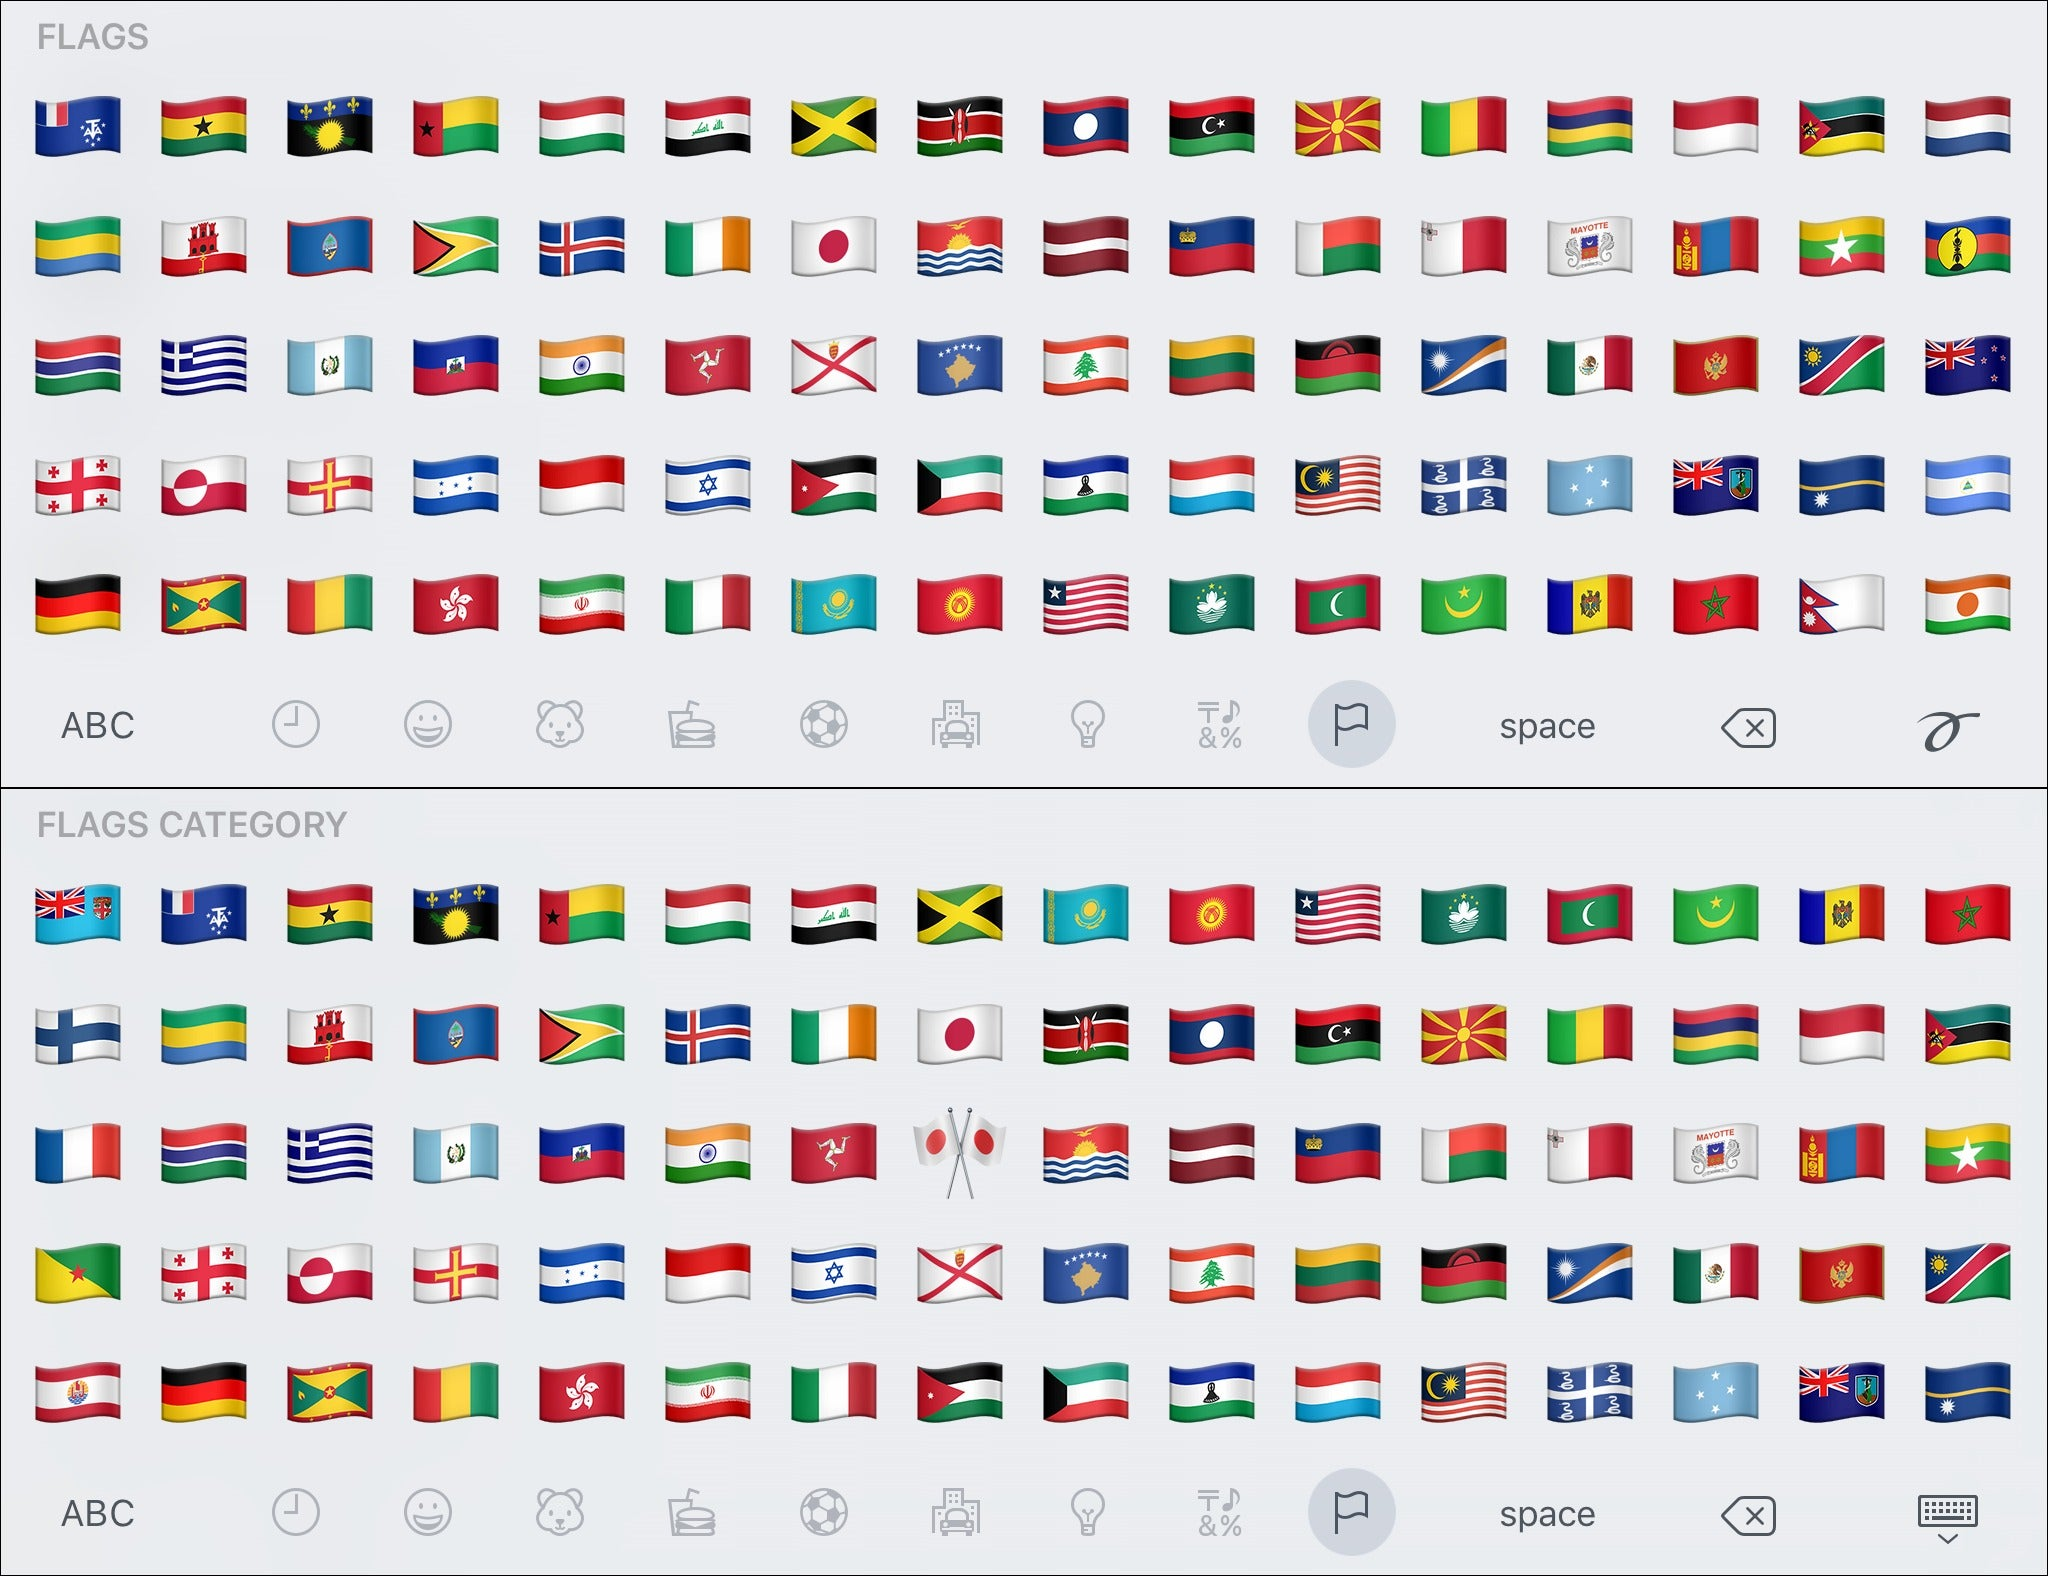 Check out every single new emoji in iOS 10 2 | Macworld